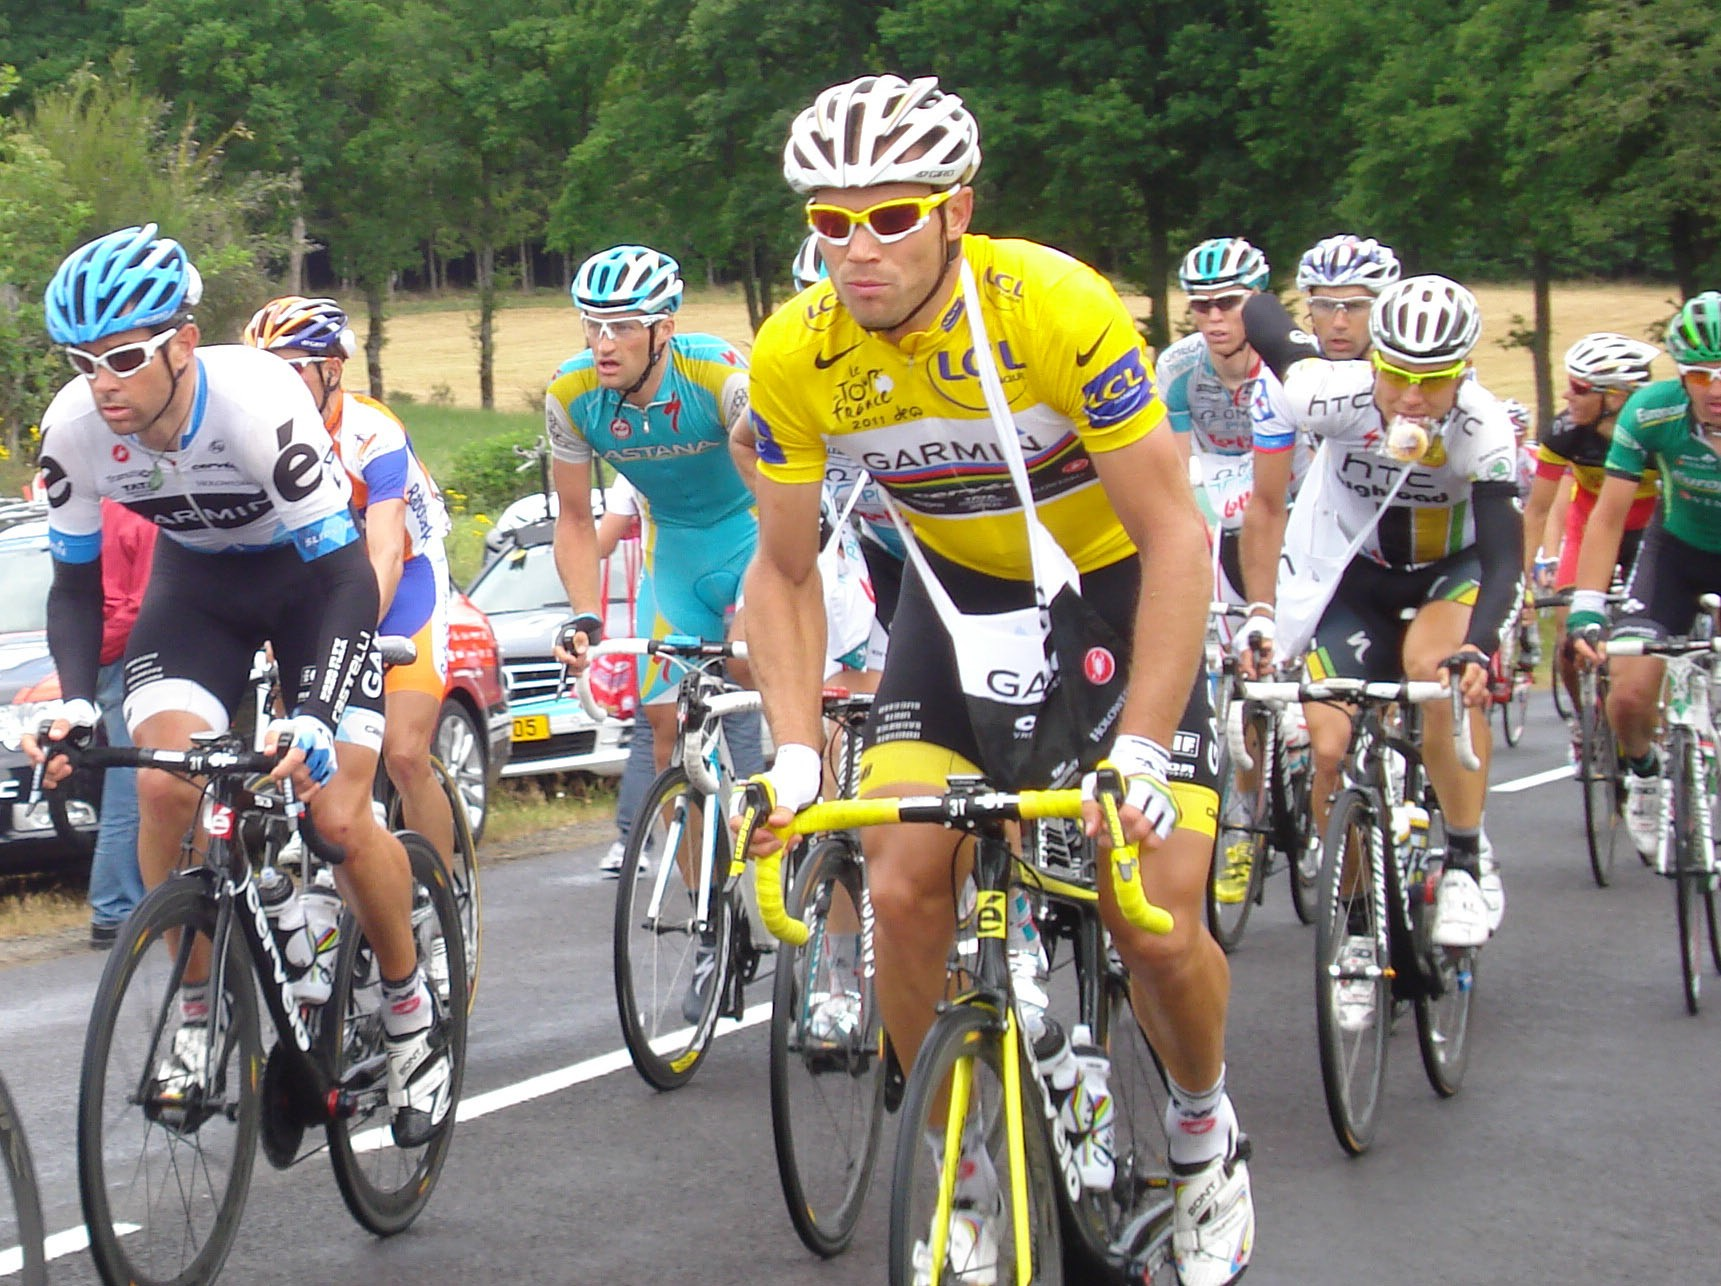 Thor Hushovd riding his bike in the 2011 Tour de France